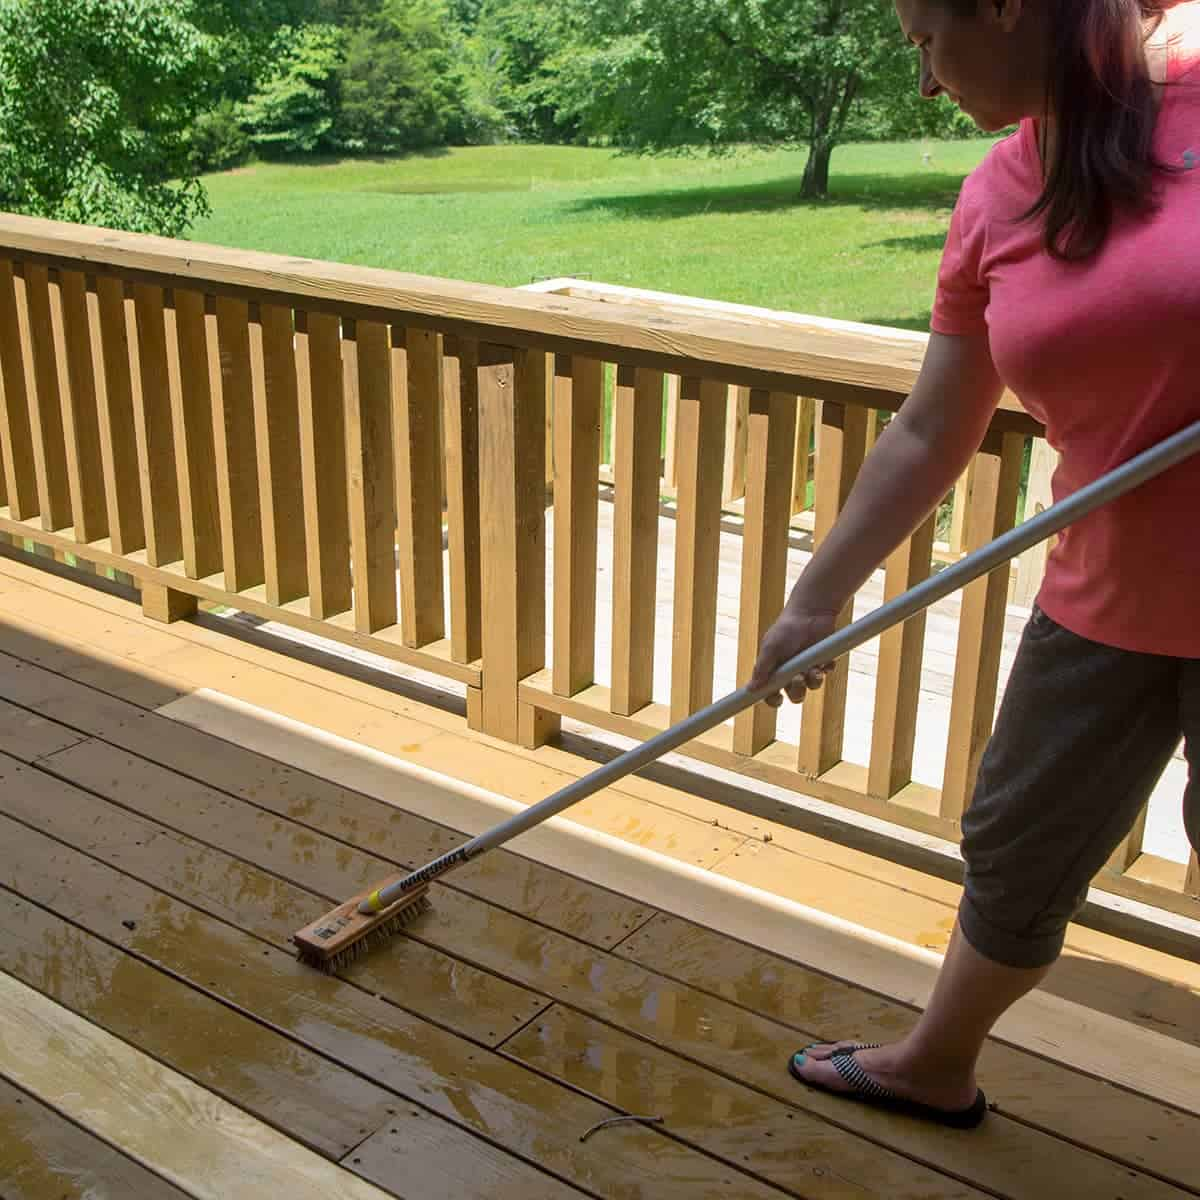 Brushing peeling stain off pressure washed deck with long handled bristle broom.